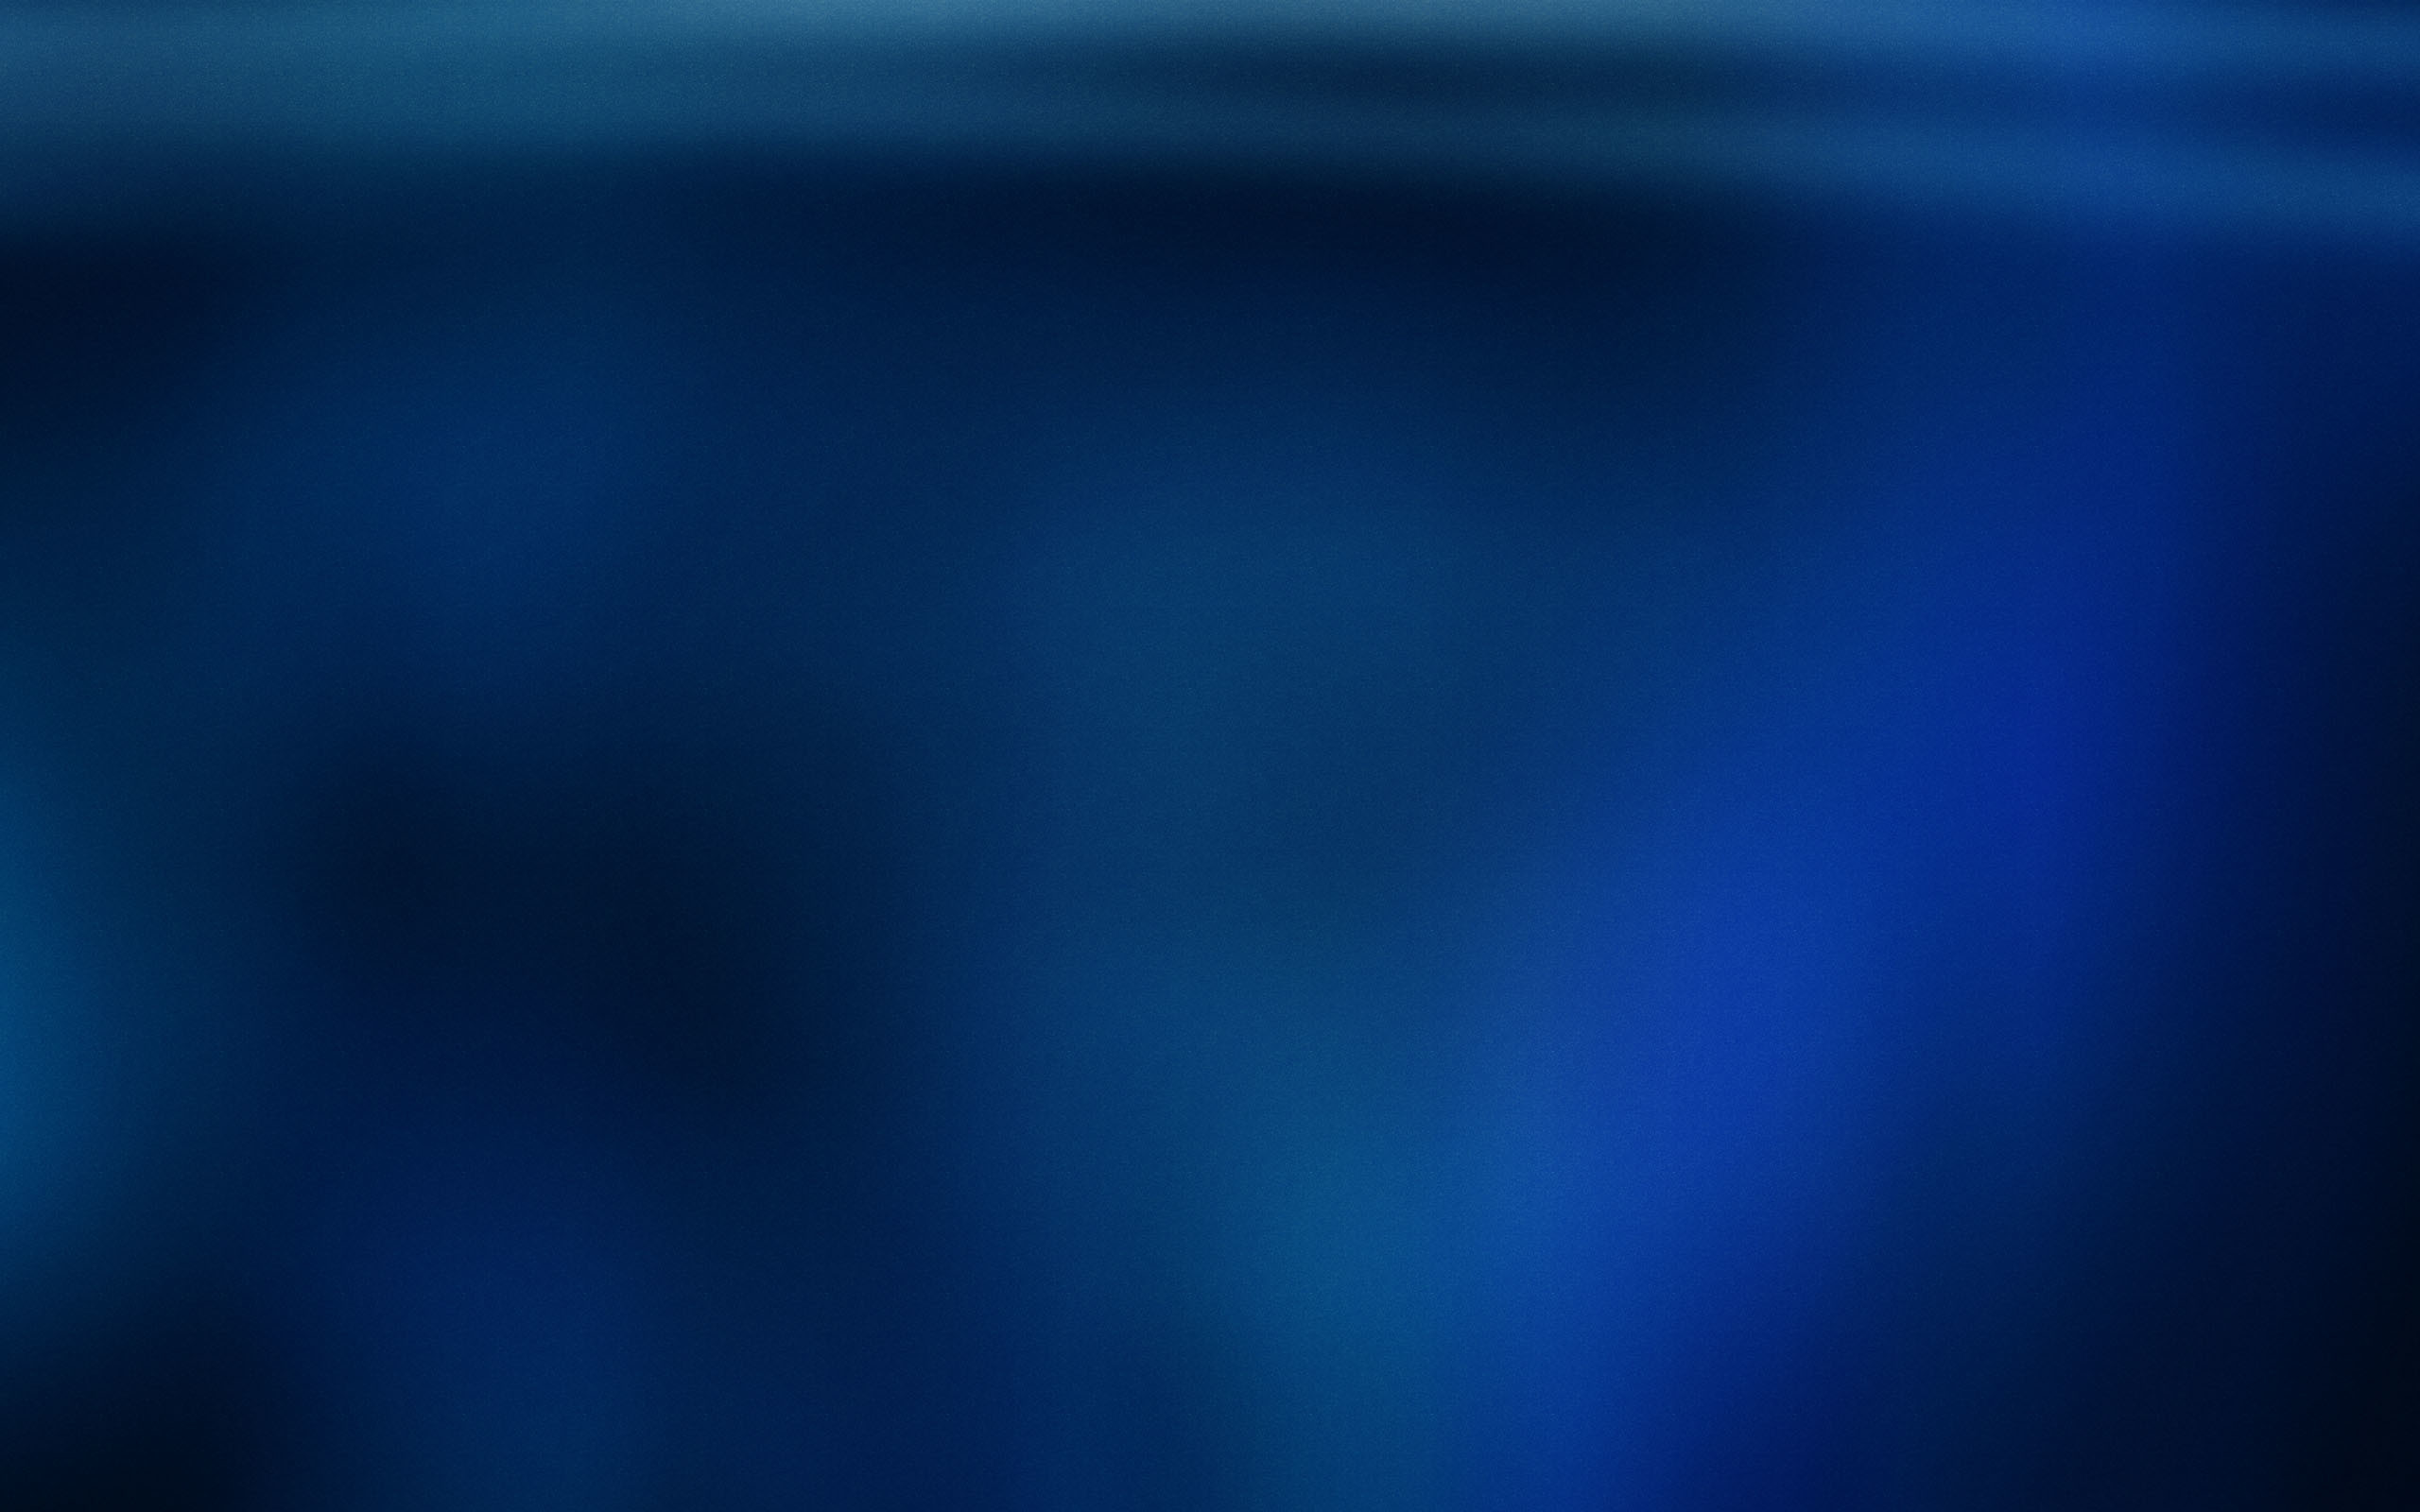 2560x1600 Hd Blue Background Wallpapers